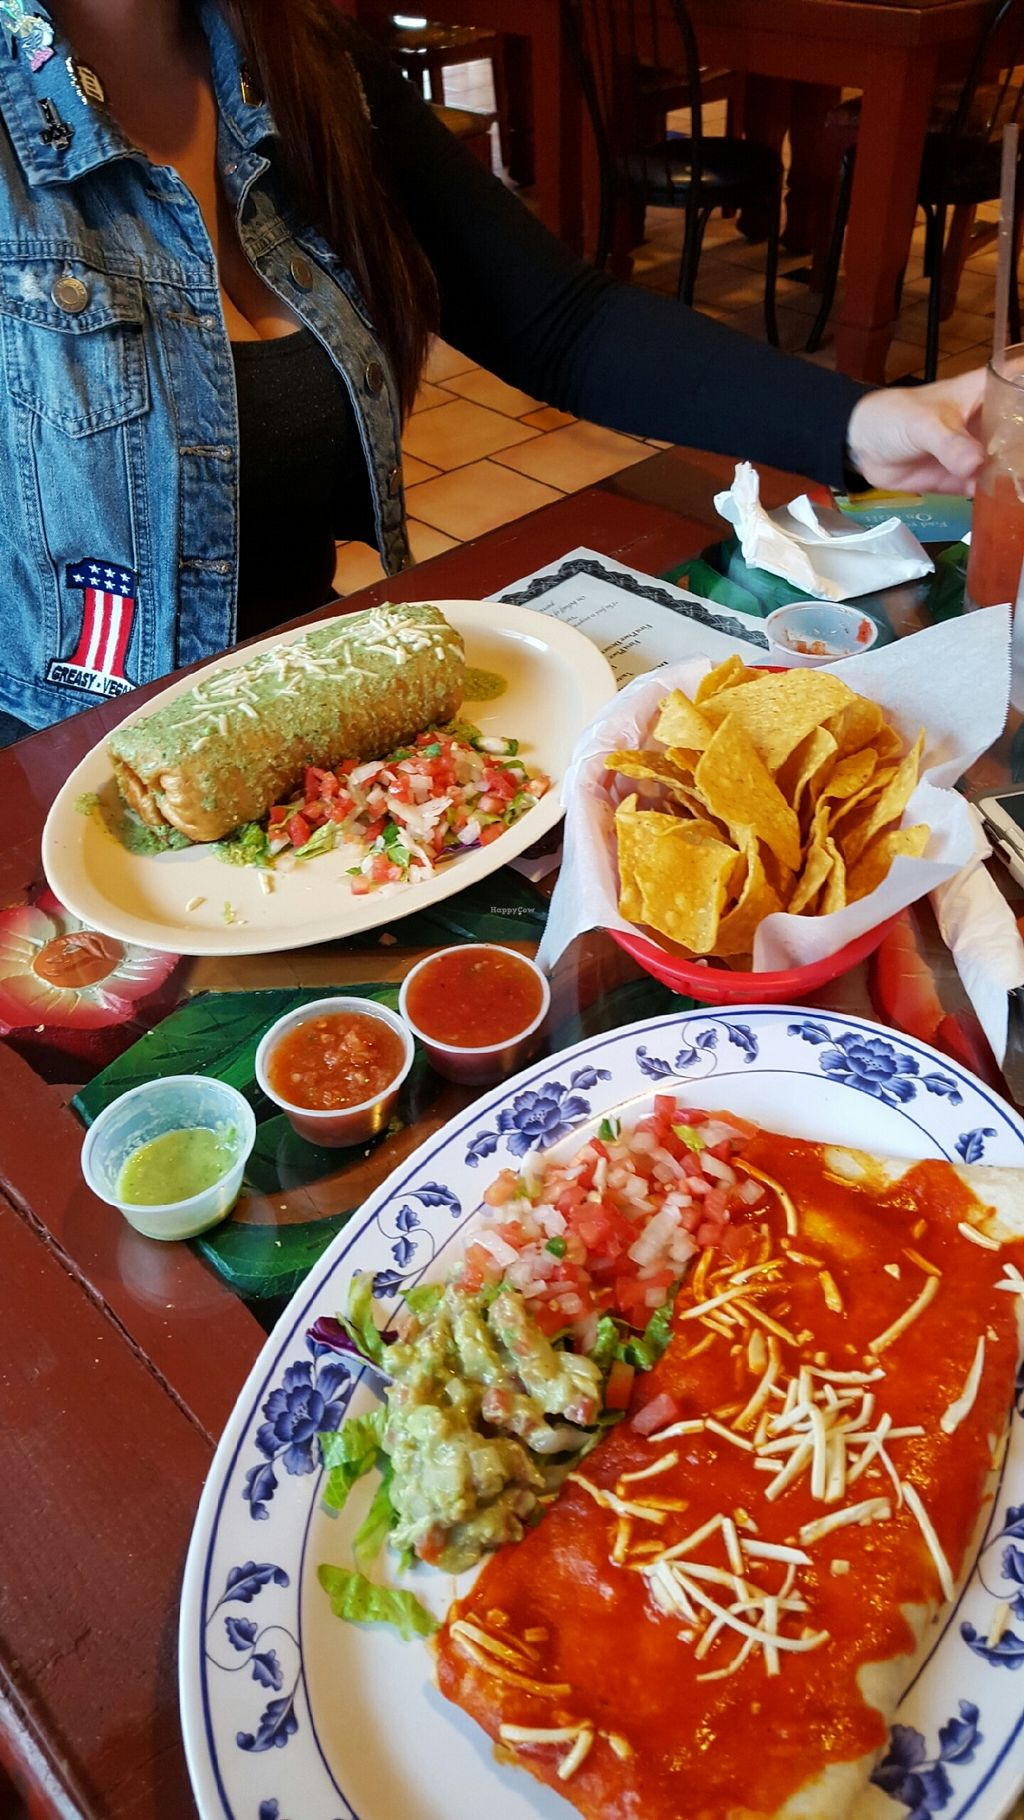 """Photo of El Papagayo  by <a href=""""/members/profile/HollyGreasyVegan"""">HollyGreasyVegan</a> <br/>Vegan Chimichanga in green sauce & a vegan quesadilla with red sauce.  <br/> March 31, 2016  - <a href='/contact/abuse/image/29059/142007'>Report</a>"""